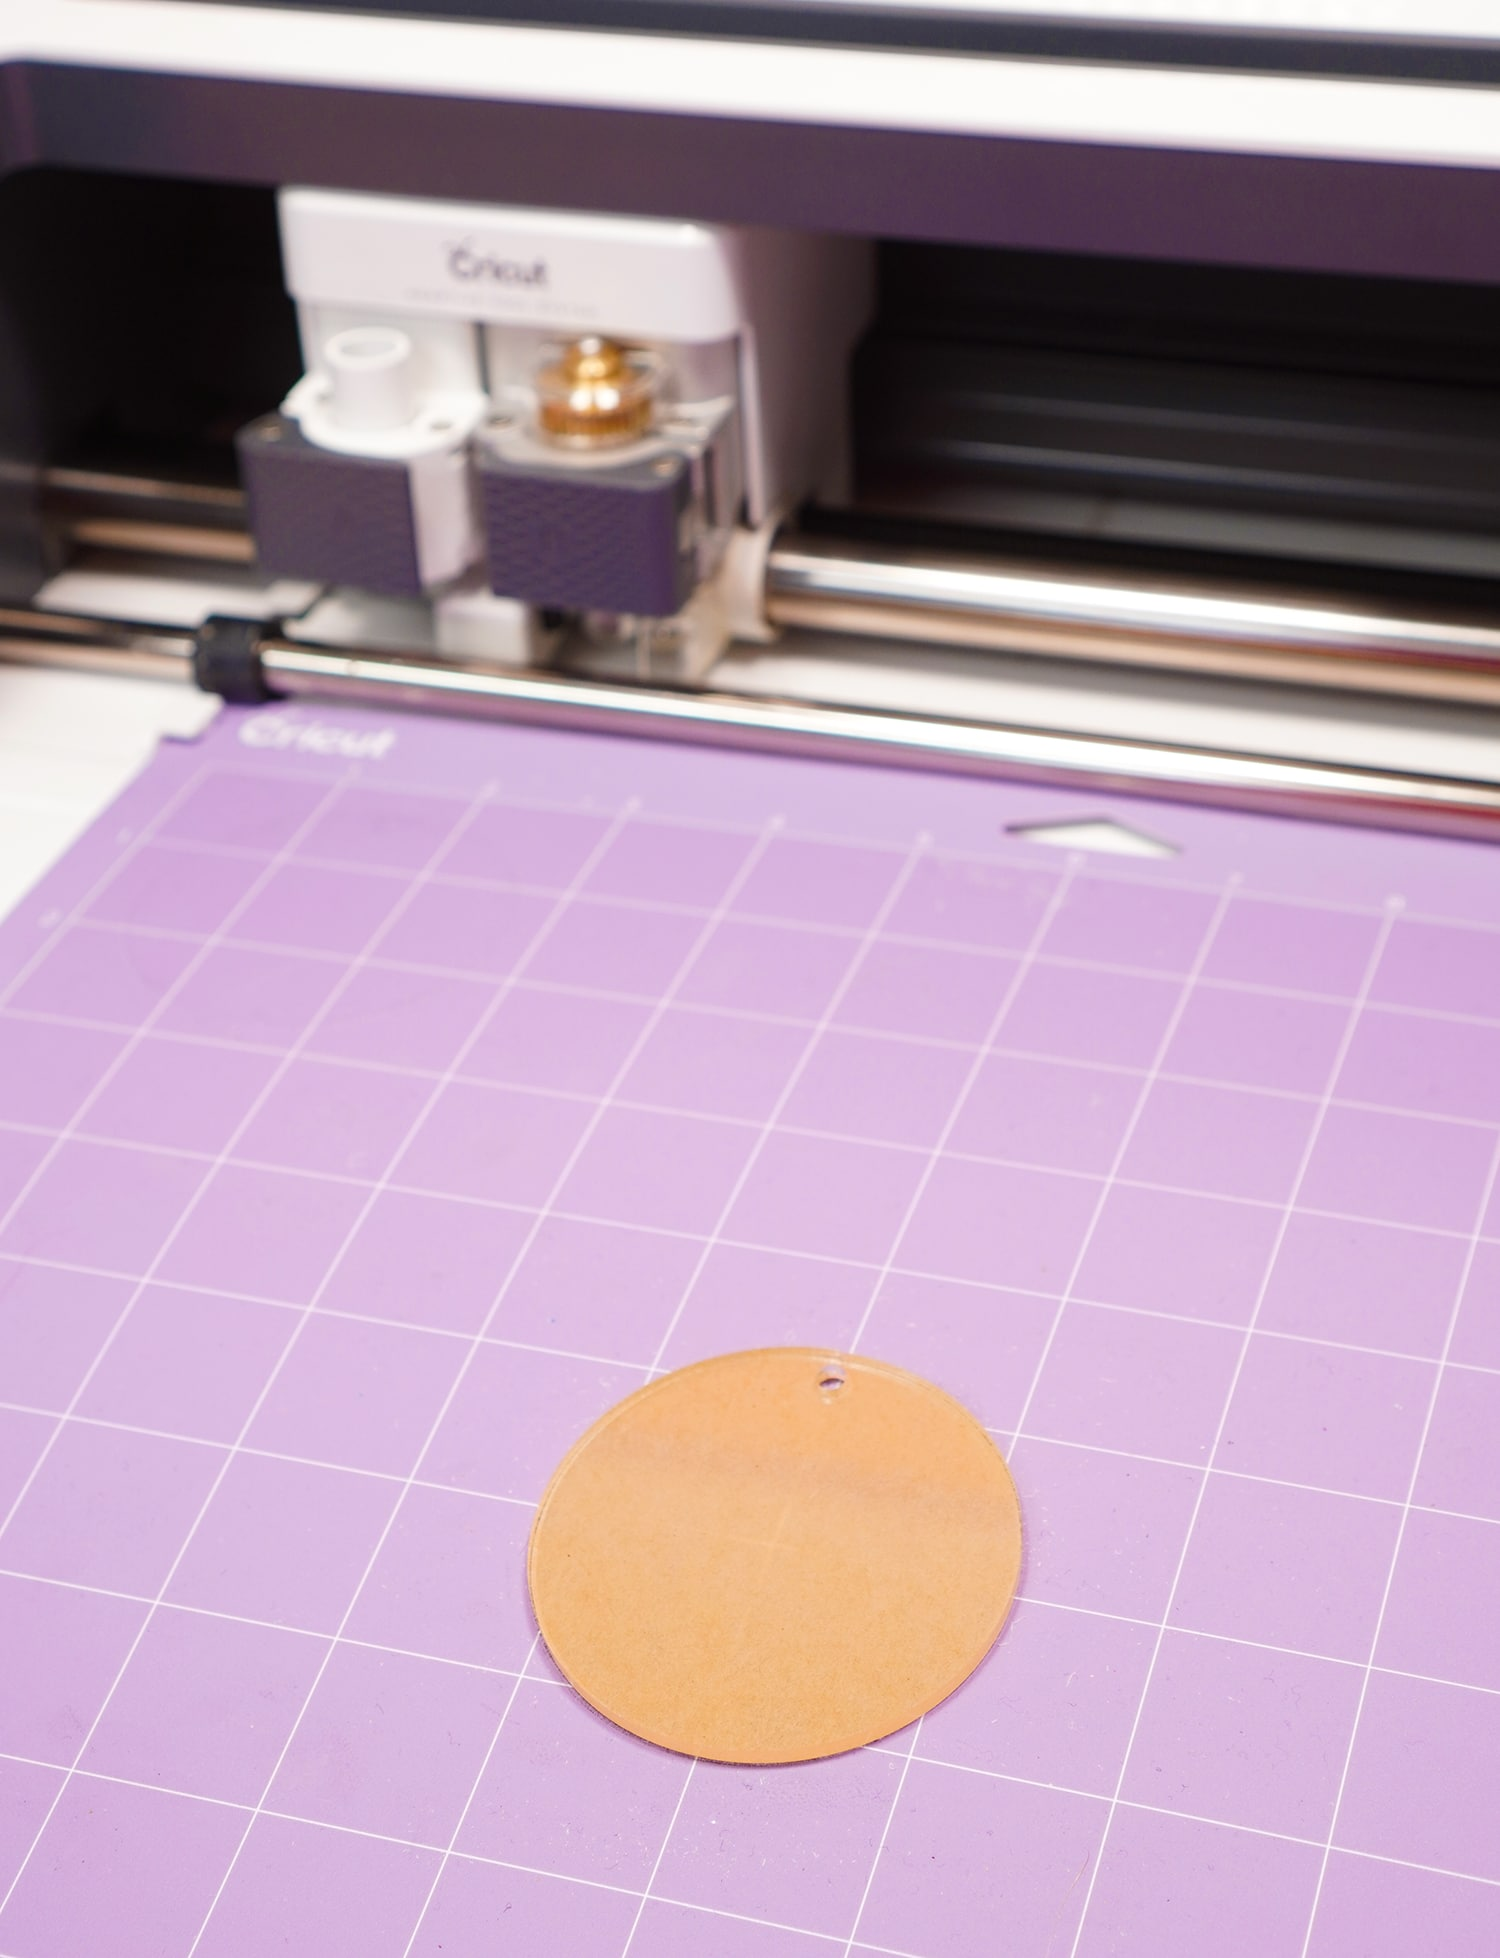 Acrylic keychain blank in the center of a purple StrongGrip Cricut mat